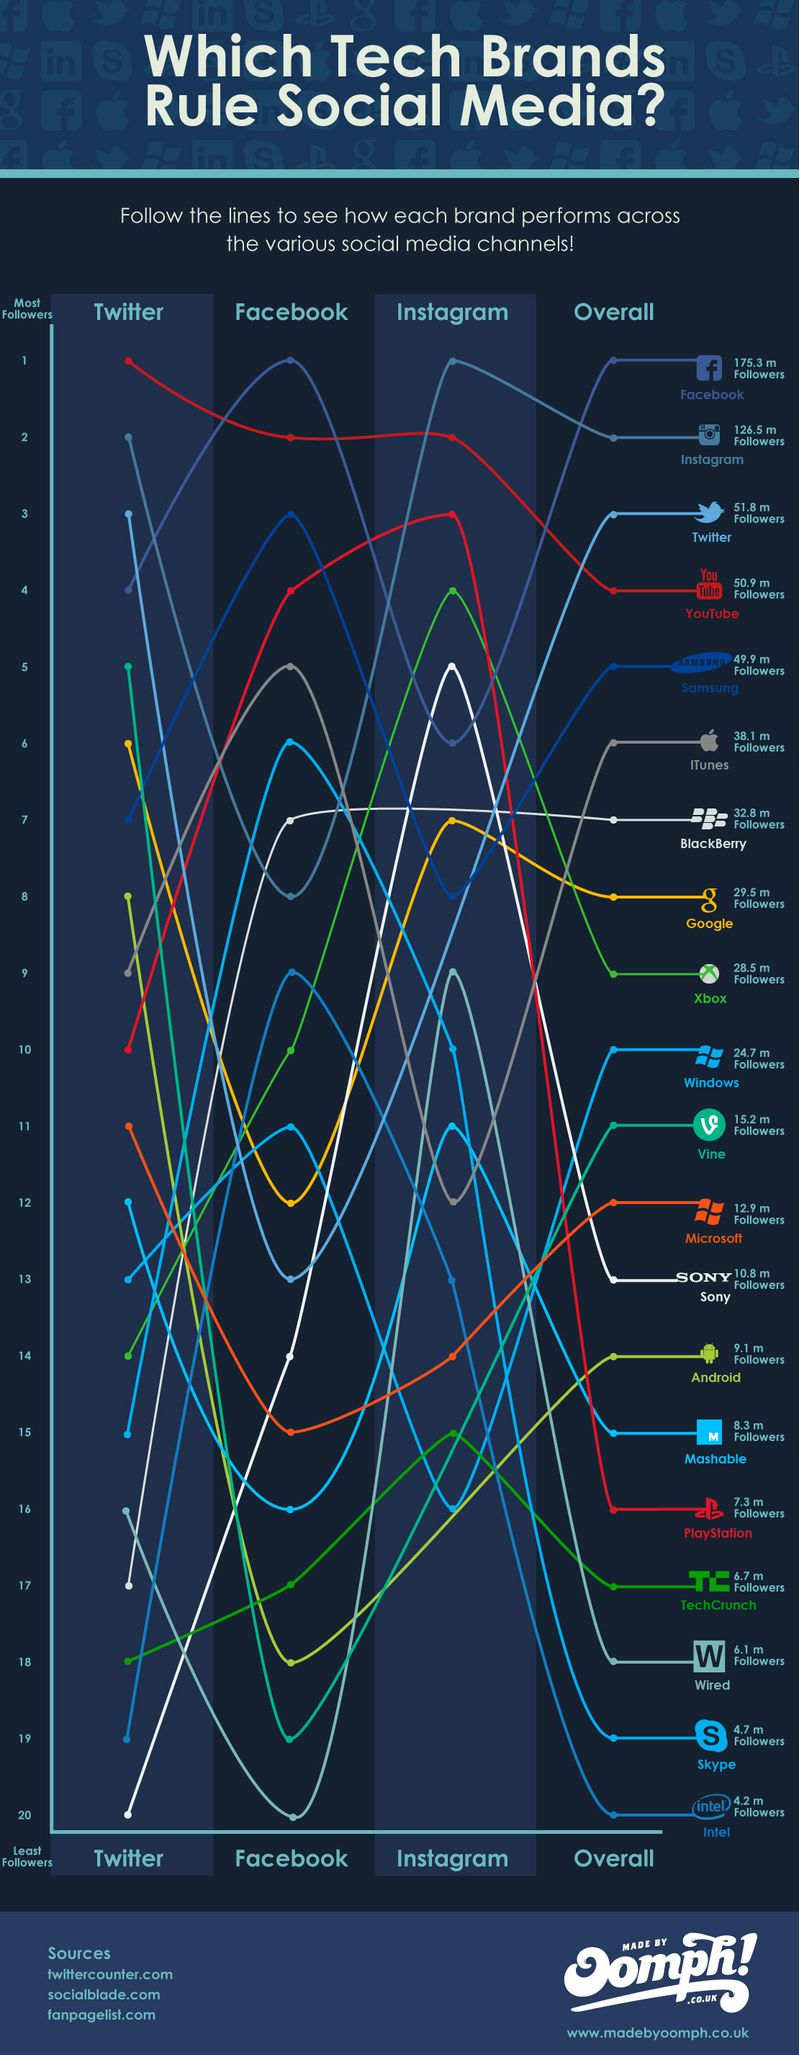 Oomph infographic on leading tech brands on social media